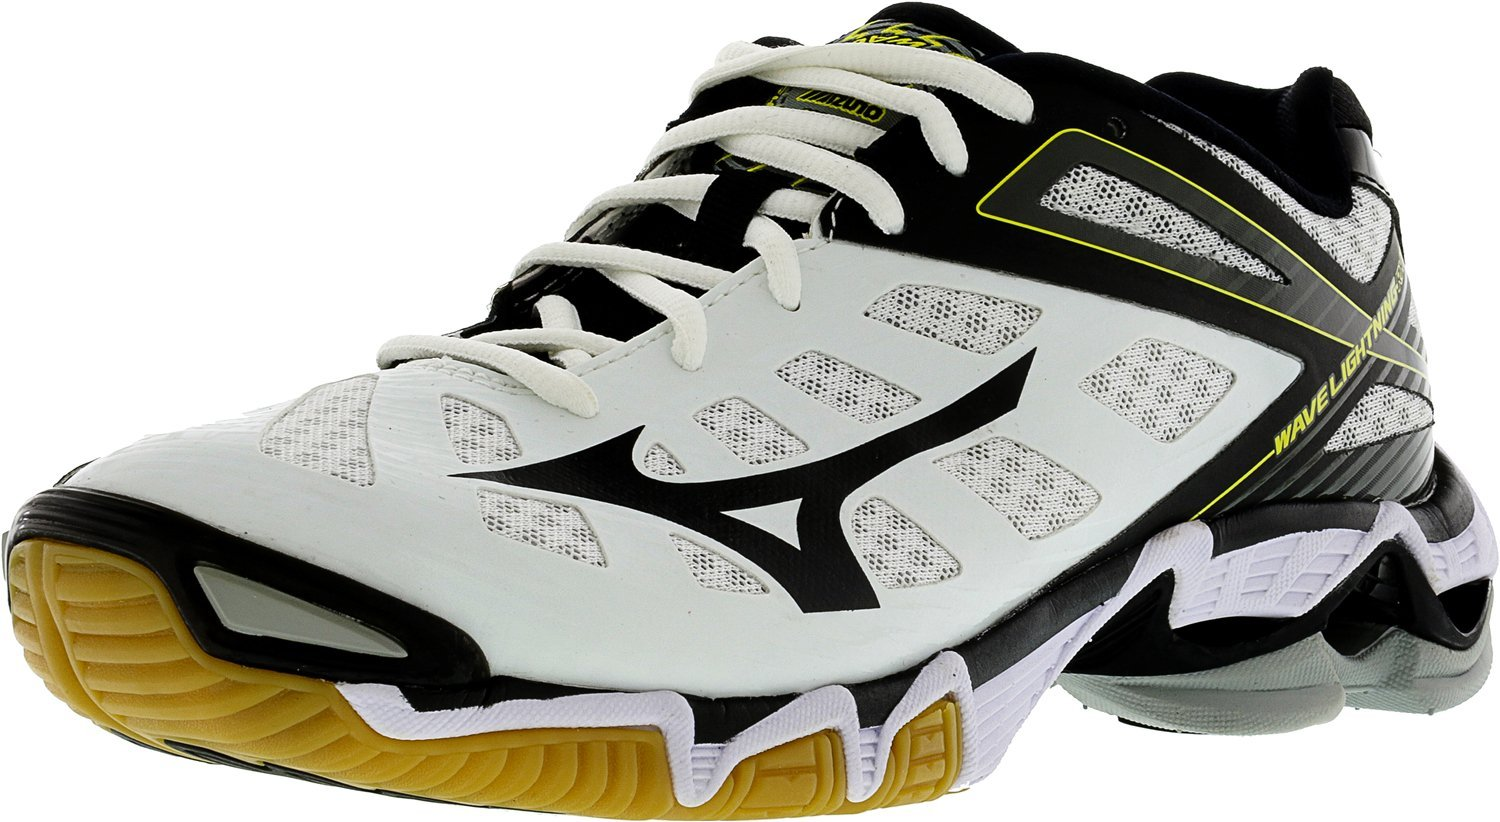 Mizuno Women's Wave Lightning RX3 Volley Ball Shoe,White/Black,8.5 M US by Mizuno (Image #1)